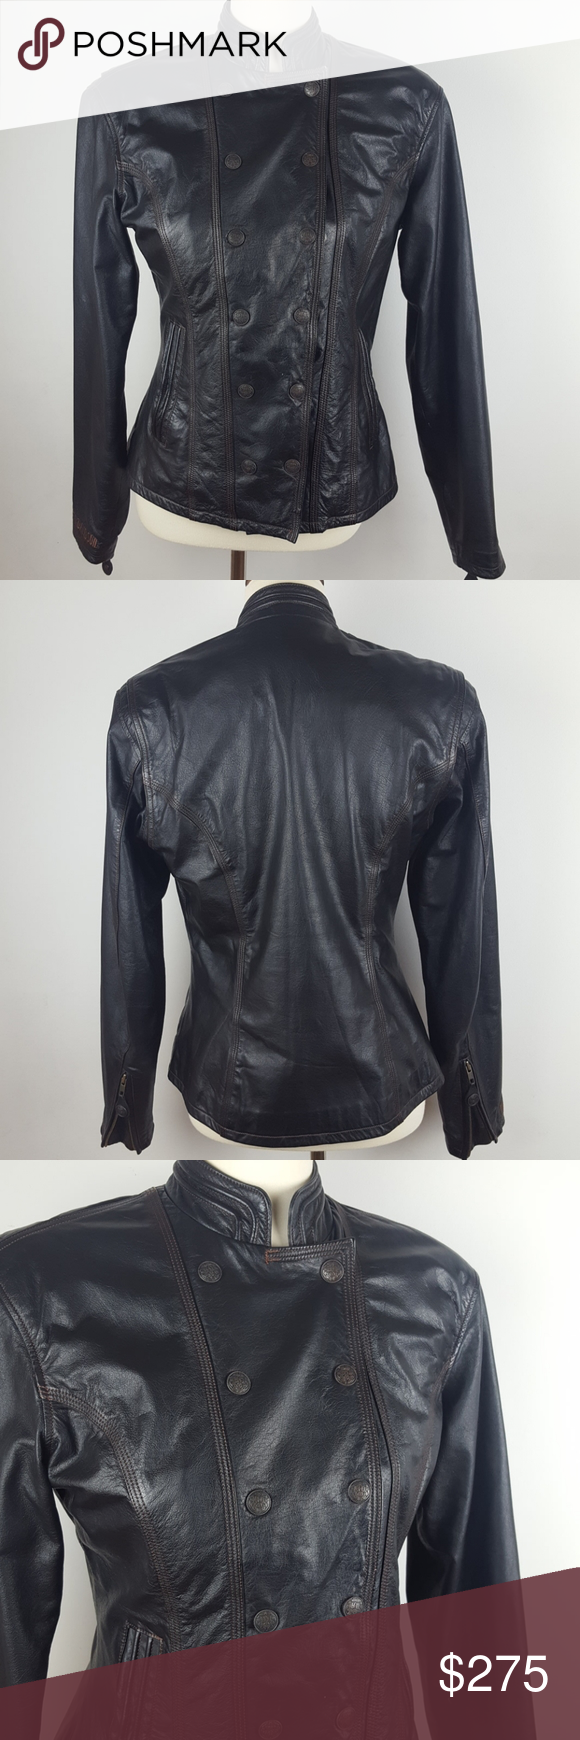 Harley-Davidson Leather Jacket Harley-Davidson leather jacket. Size Small. In good condition! Beautiful fitted style. Fully lined. Mandarin collar. Inside pocket. Side pockets with snaps. HD logo on all the hardware. Inside zip and snaps. Zipper on sleeves with a pleated feature. Pleat on shoulder for wider range of motion. Little bit of wear on top of right shoulder, but hardly noticeable (see picture #5.) Could be used for outerwear or as a dressy casual jacket!  #0707 ◾Length 24